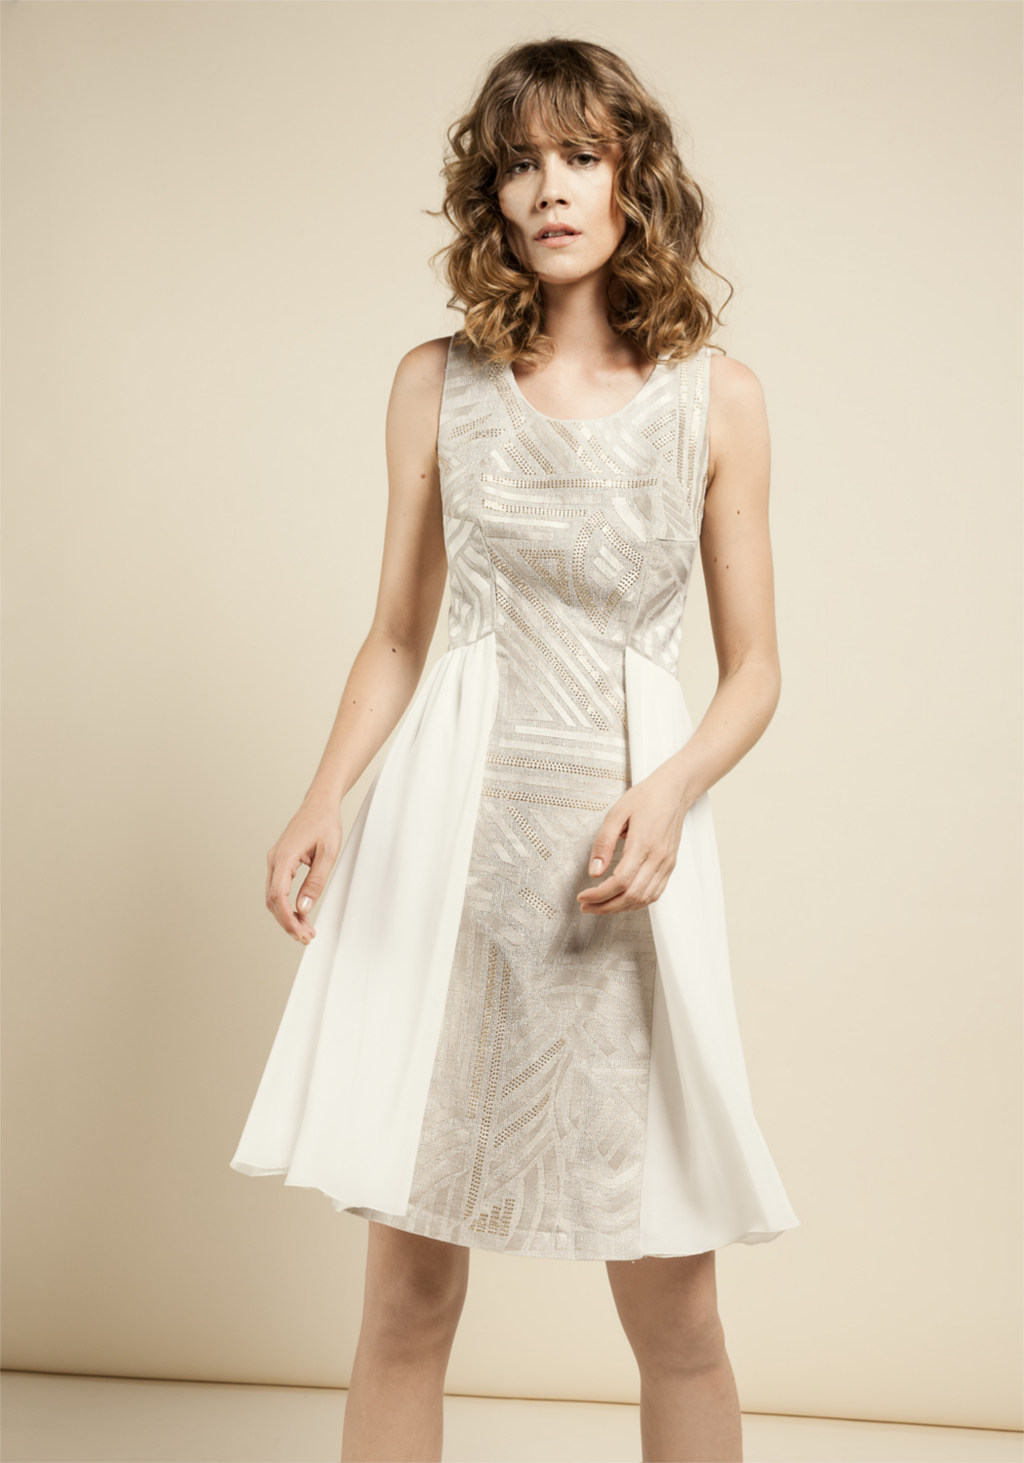 White chiffon dress with unic decoration laser insert in white silk with shining small gold studs